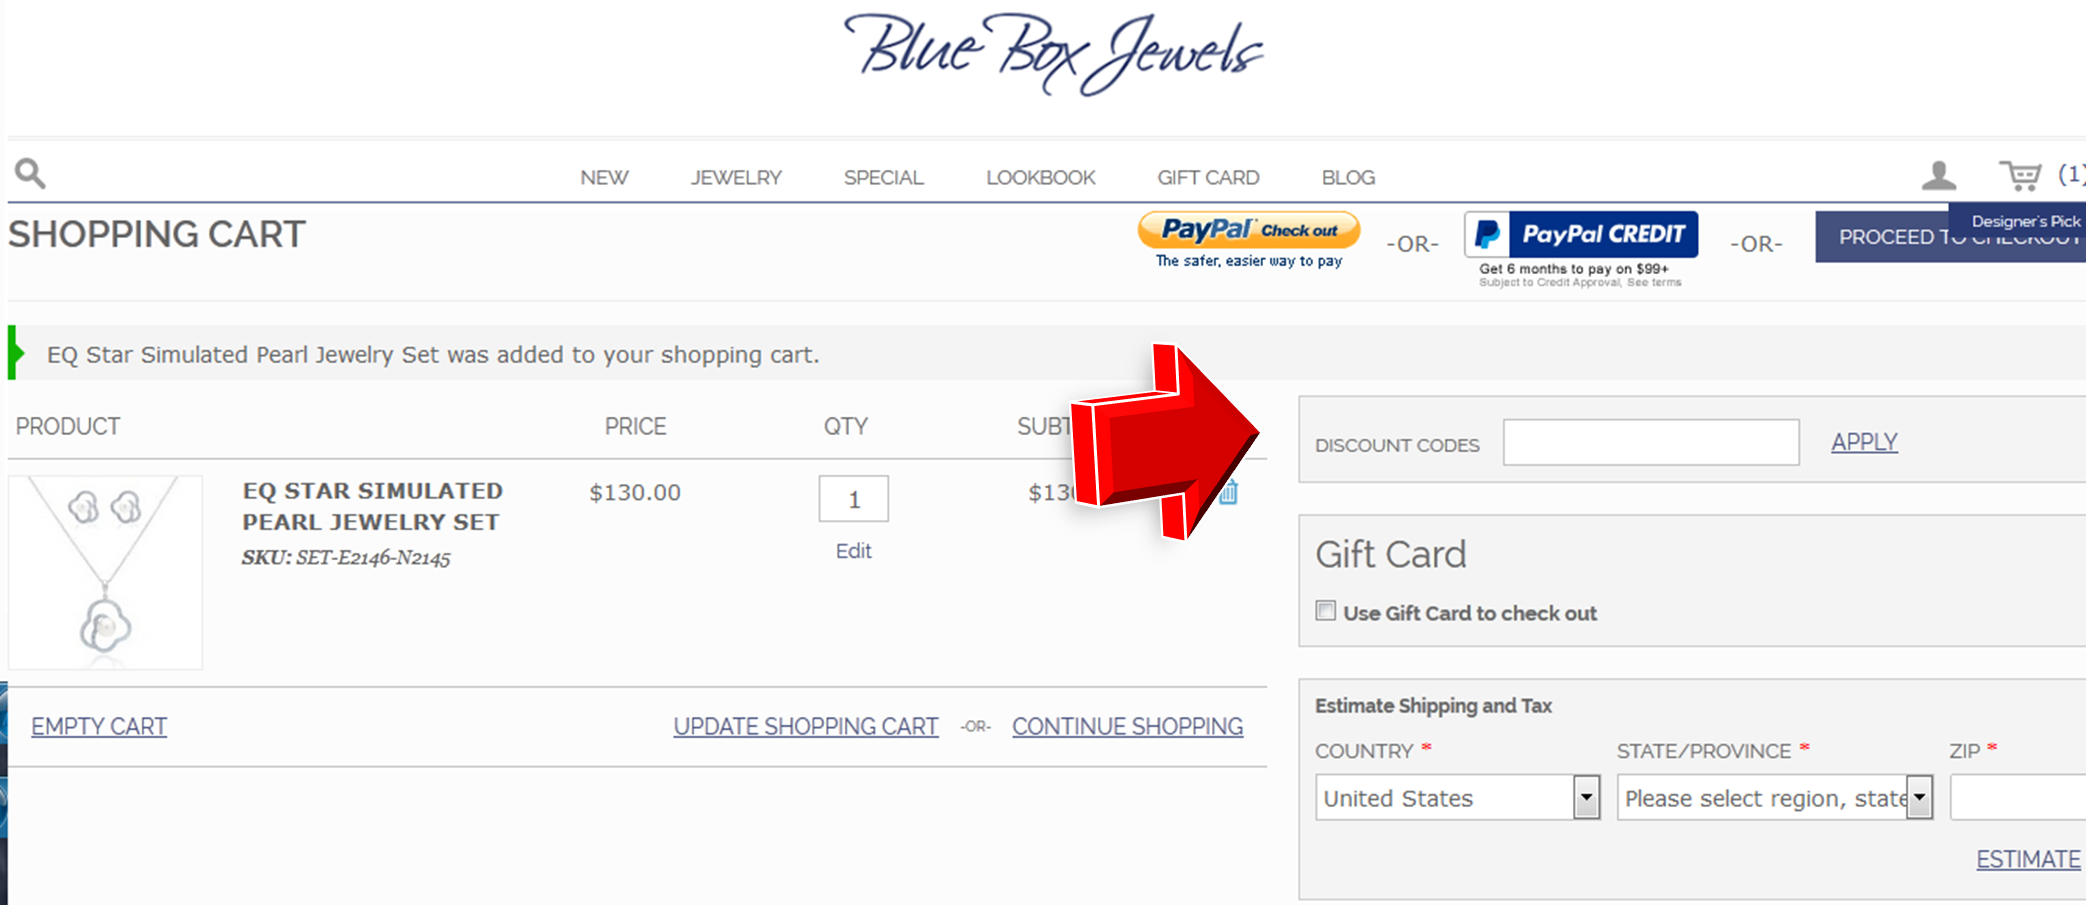 Step3 to enter Blue Box Jewels Coupon Code